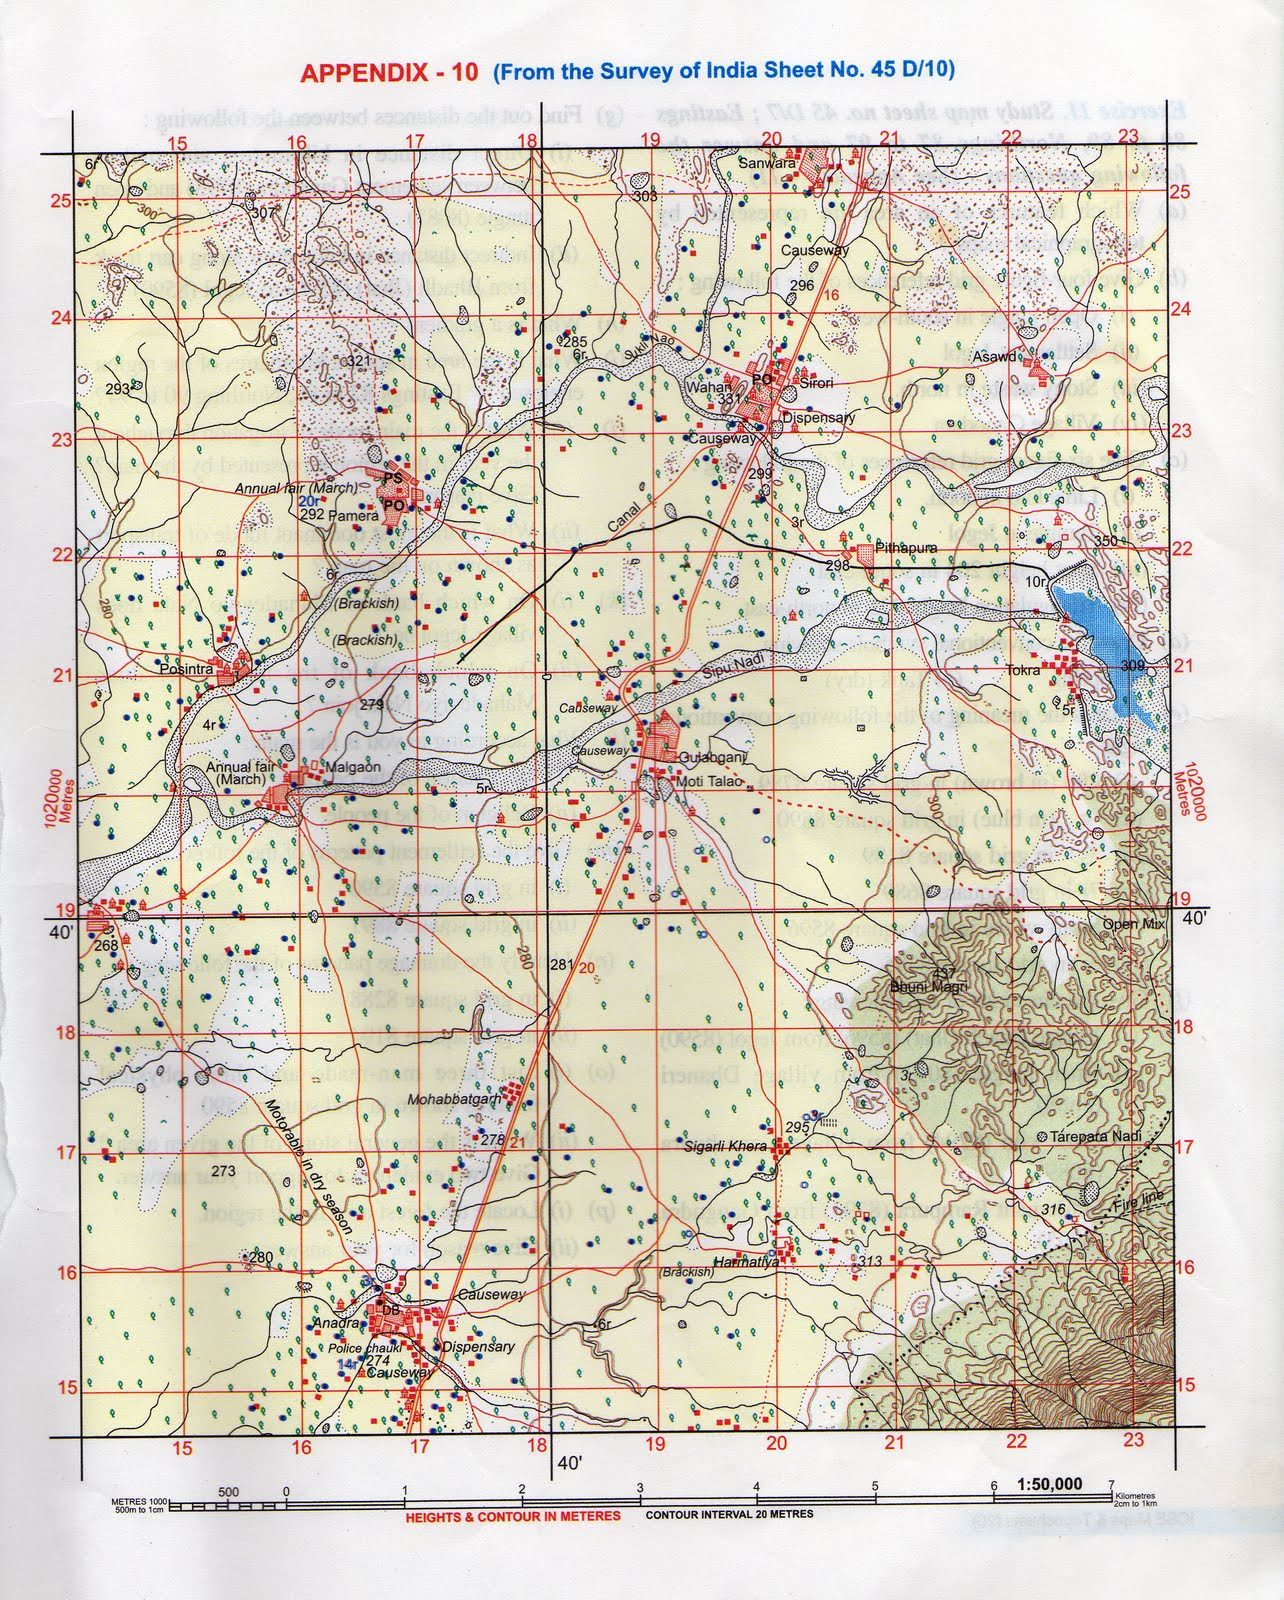 survey of india map sheet no 45d 7